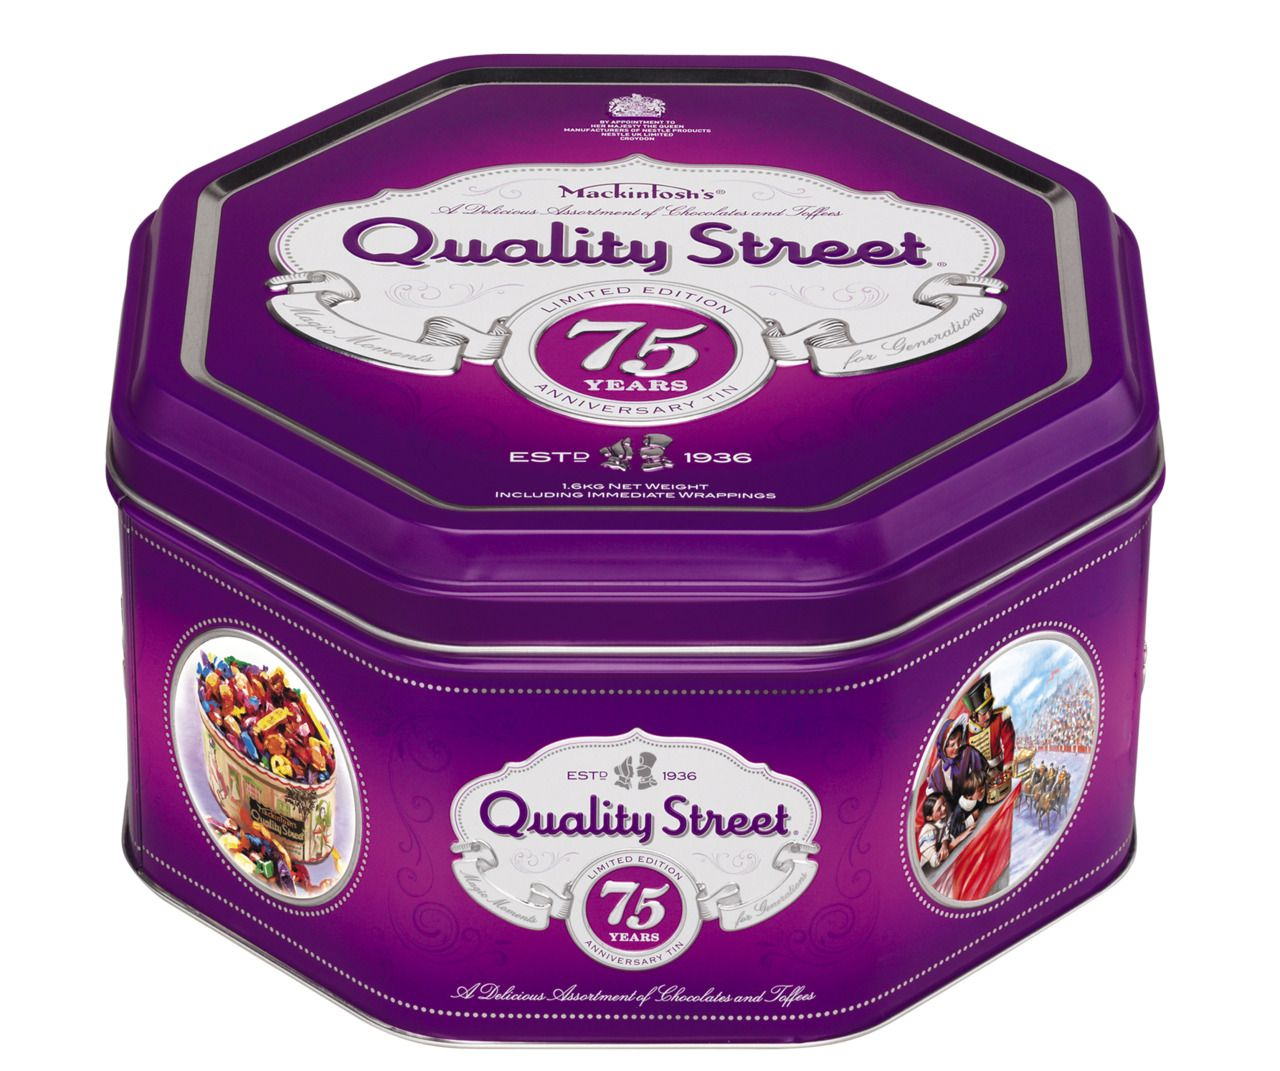 one of my favourite design jobs in recent years the quality street